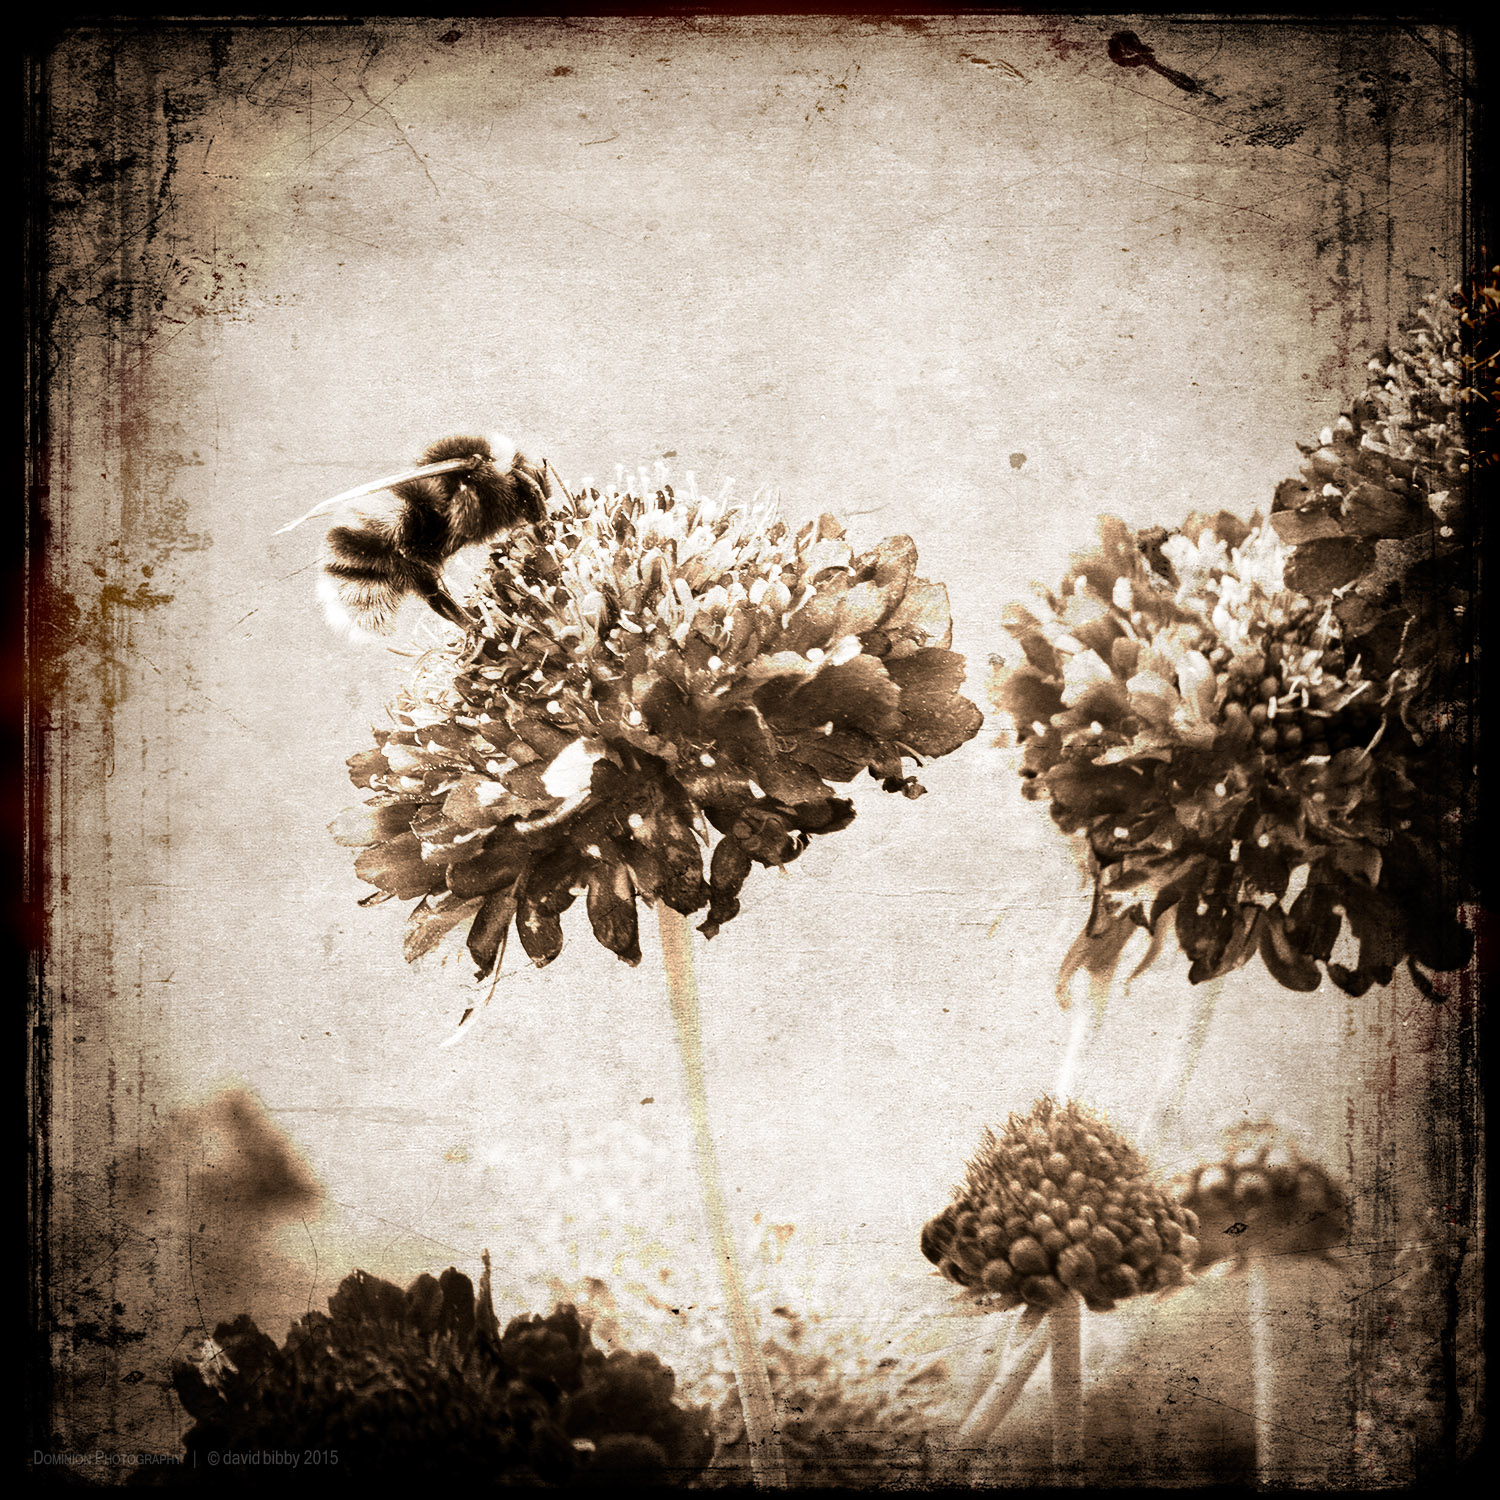 Relying upon mental stabilisation   Just as a bee takes pollen from a flower, So should I gather only what I need to sustain my practice And then, without clinging, return to abide in solitude As if I had never met anyone.